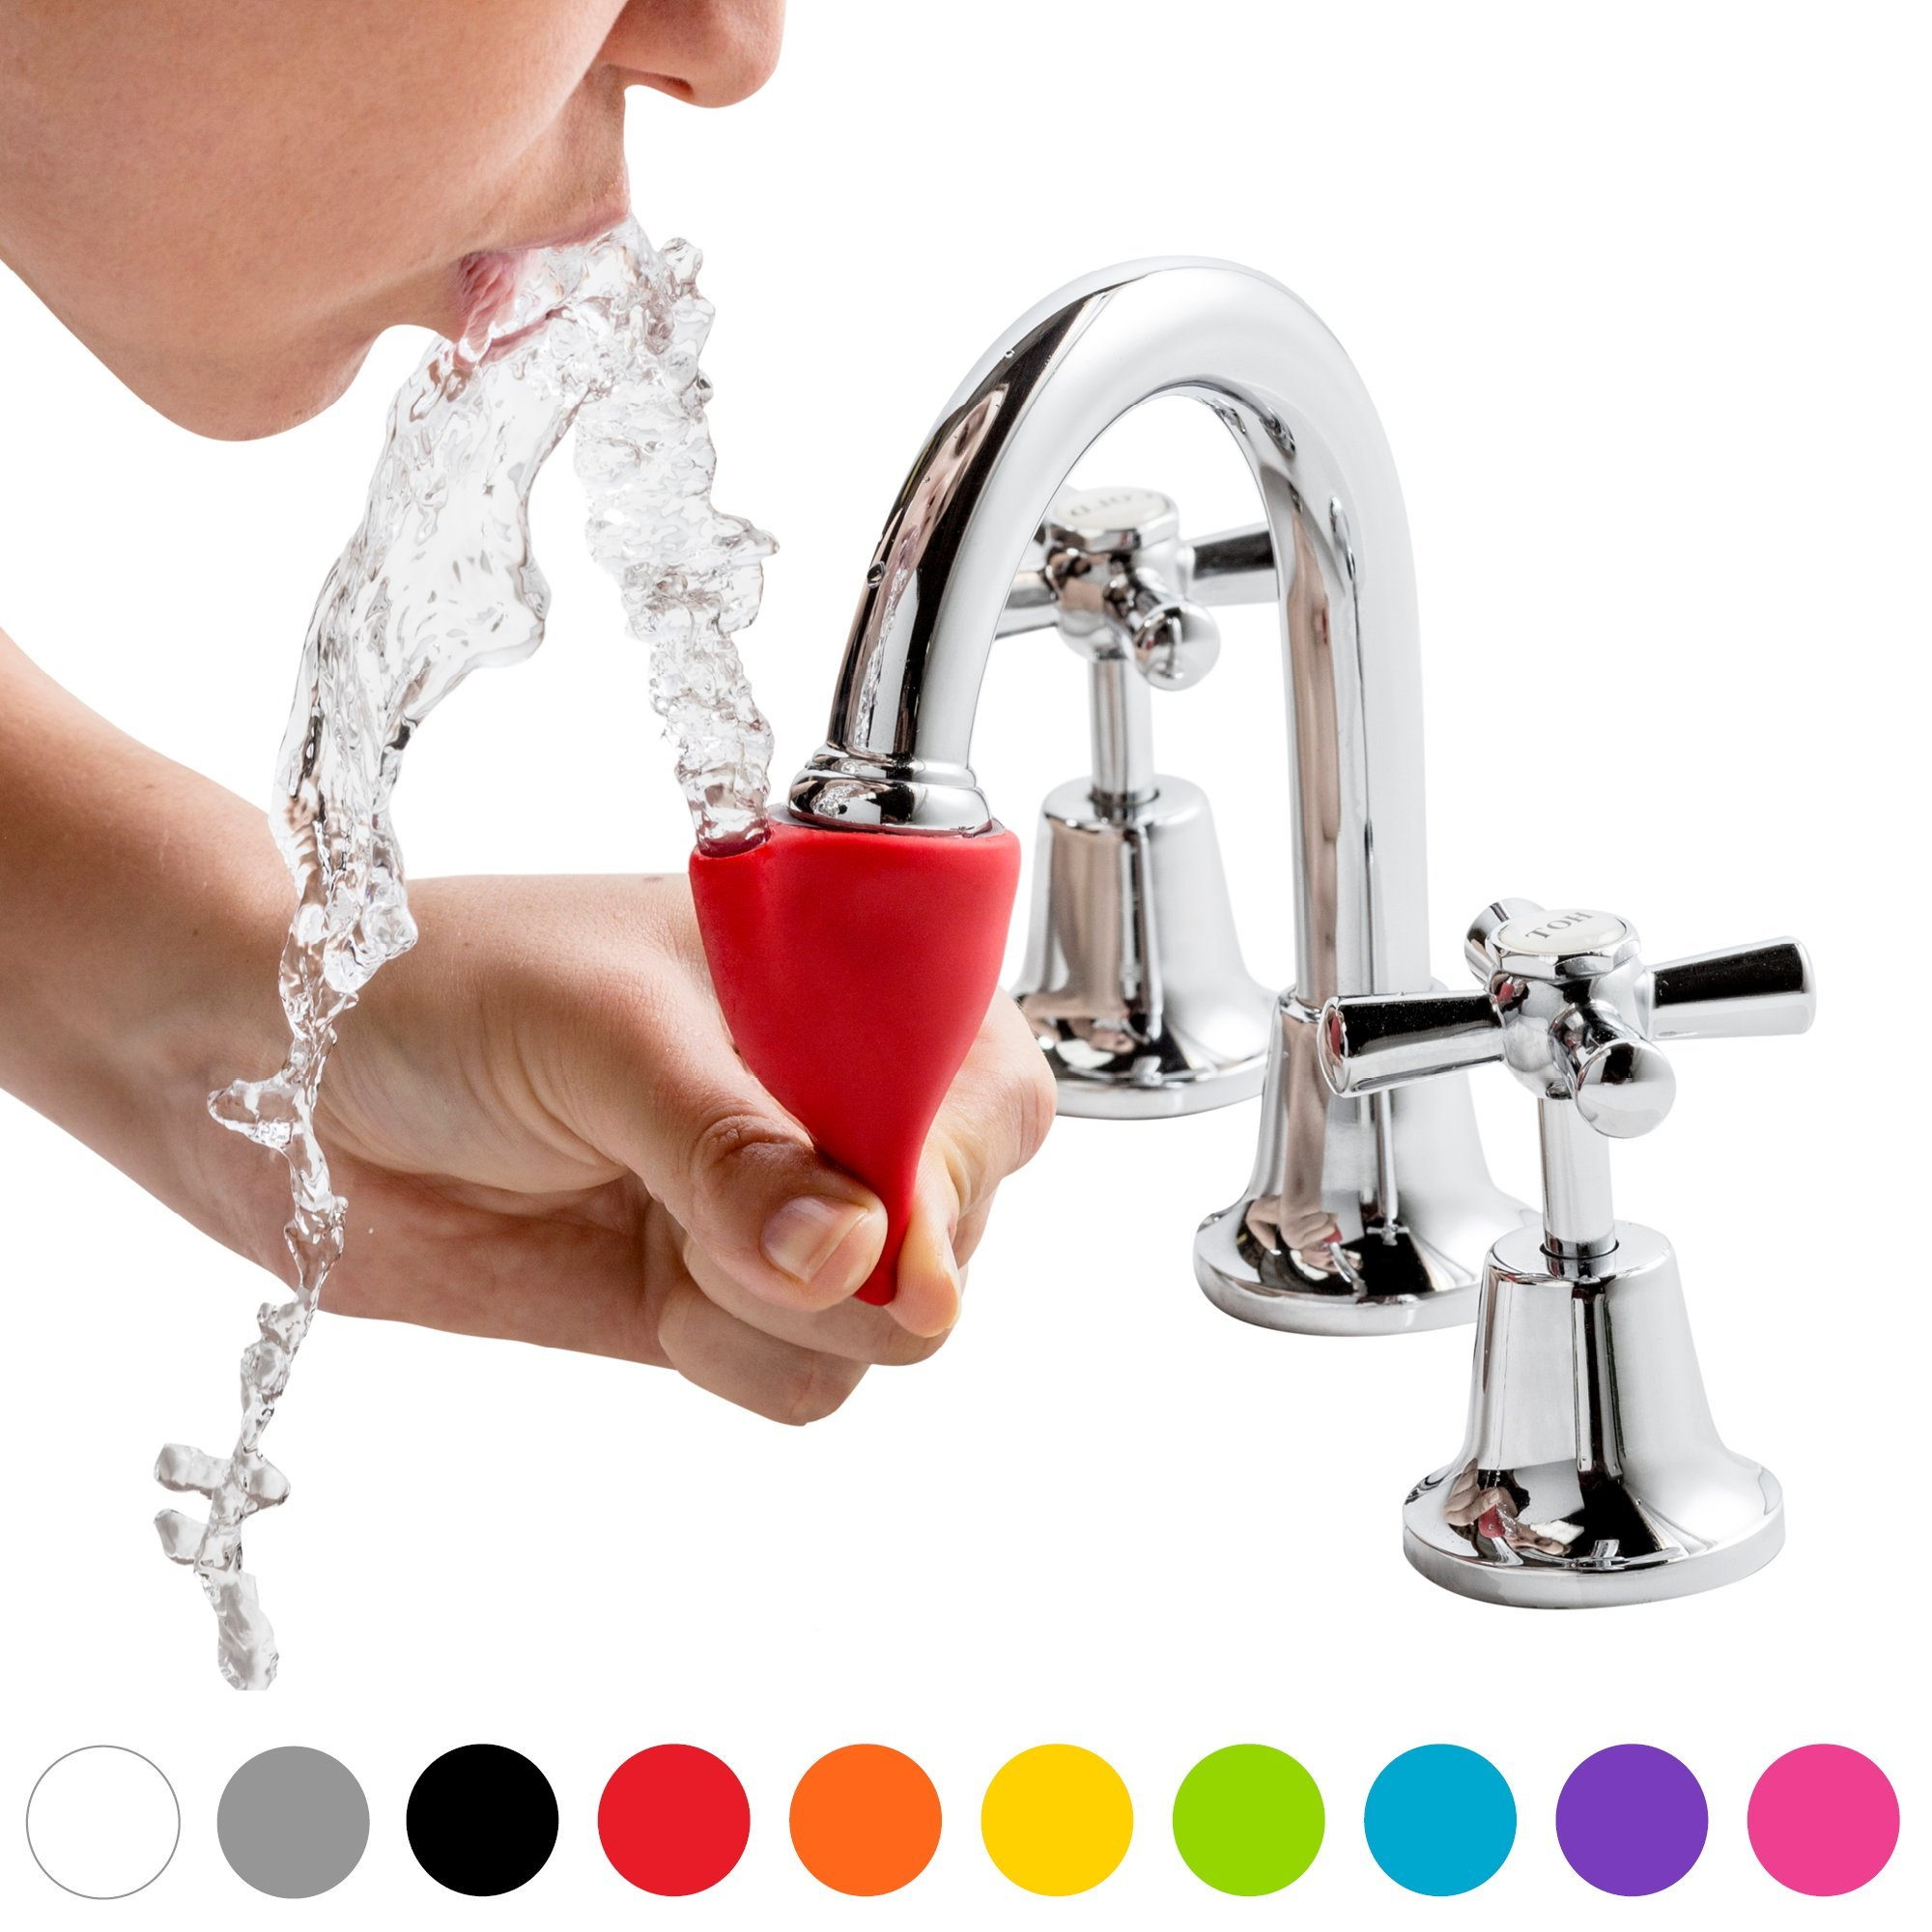 Dreamfarm Tapi - Faucet Drinking Fountain, Fits Most Taps (Assorted Colors) by Dreamfarm (Image #2)